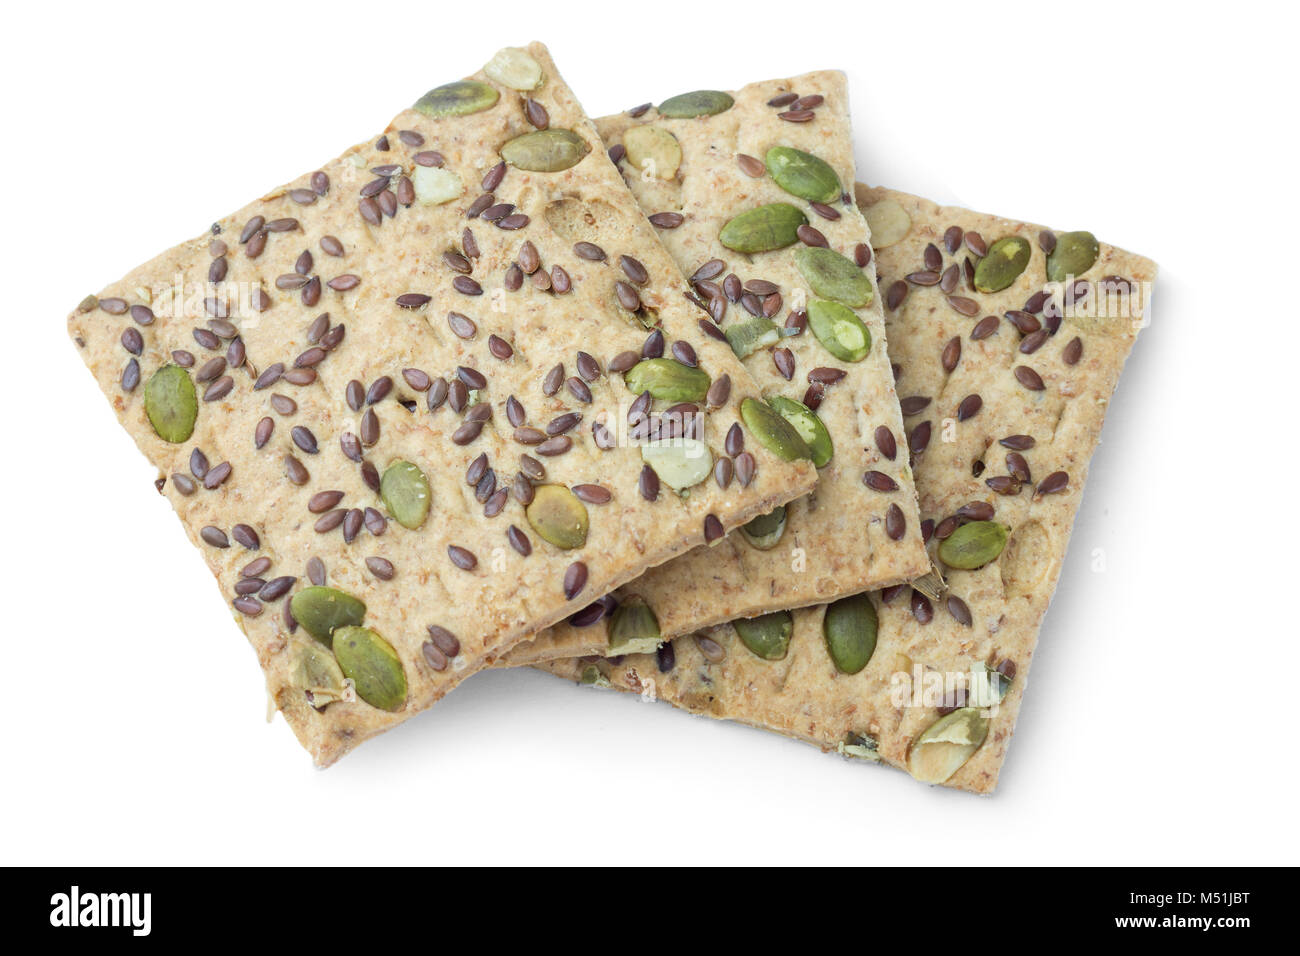 Sugar-free cookies with pumpkin seeds on a white background, diabetic food Stock Photo